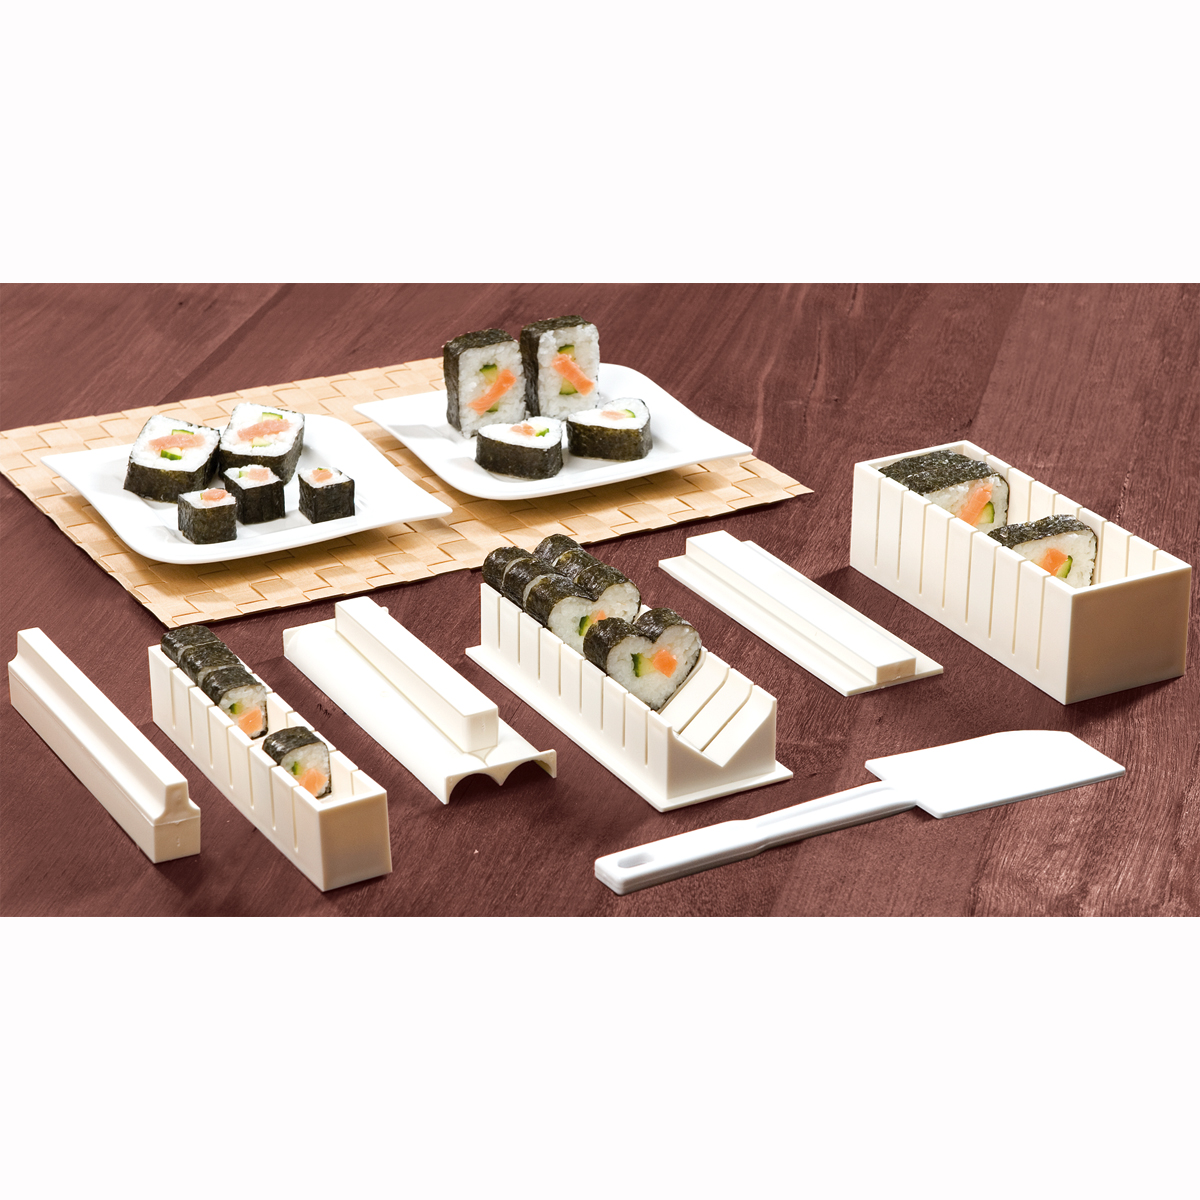 le plaisir des kit sushis sushi japonais livraison. Black Bedroom Furniture Sets. Home Design Ideas